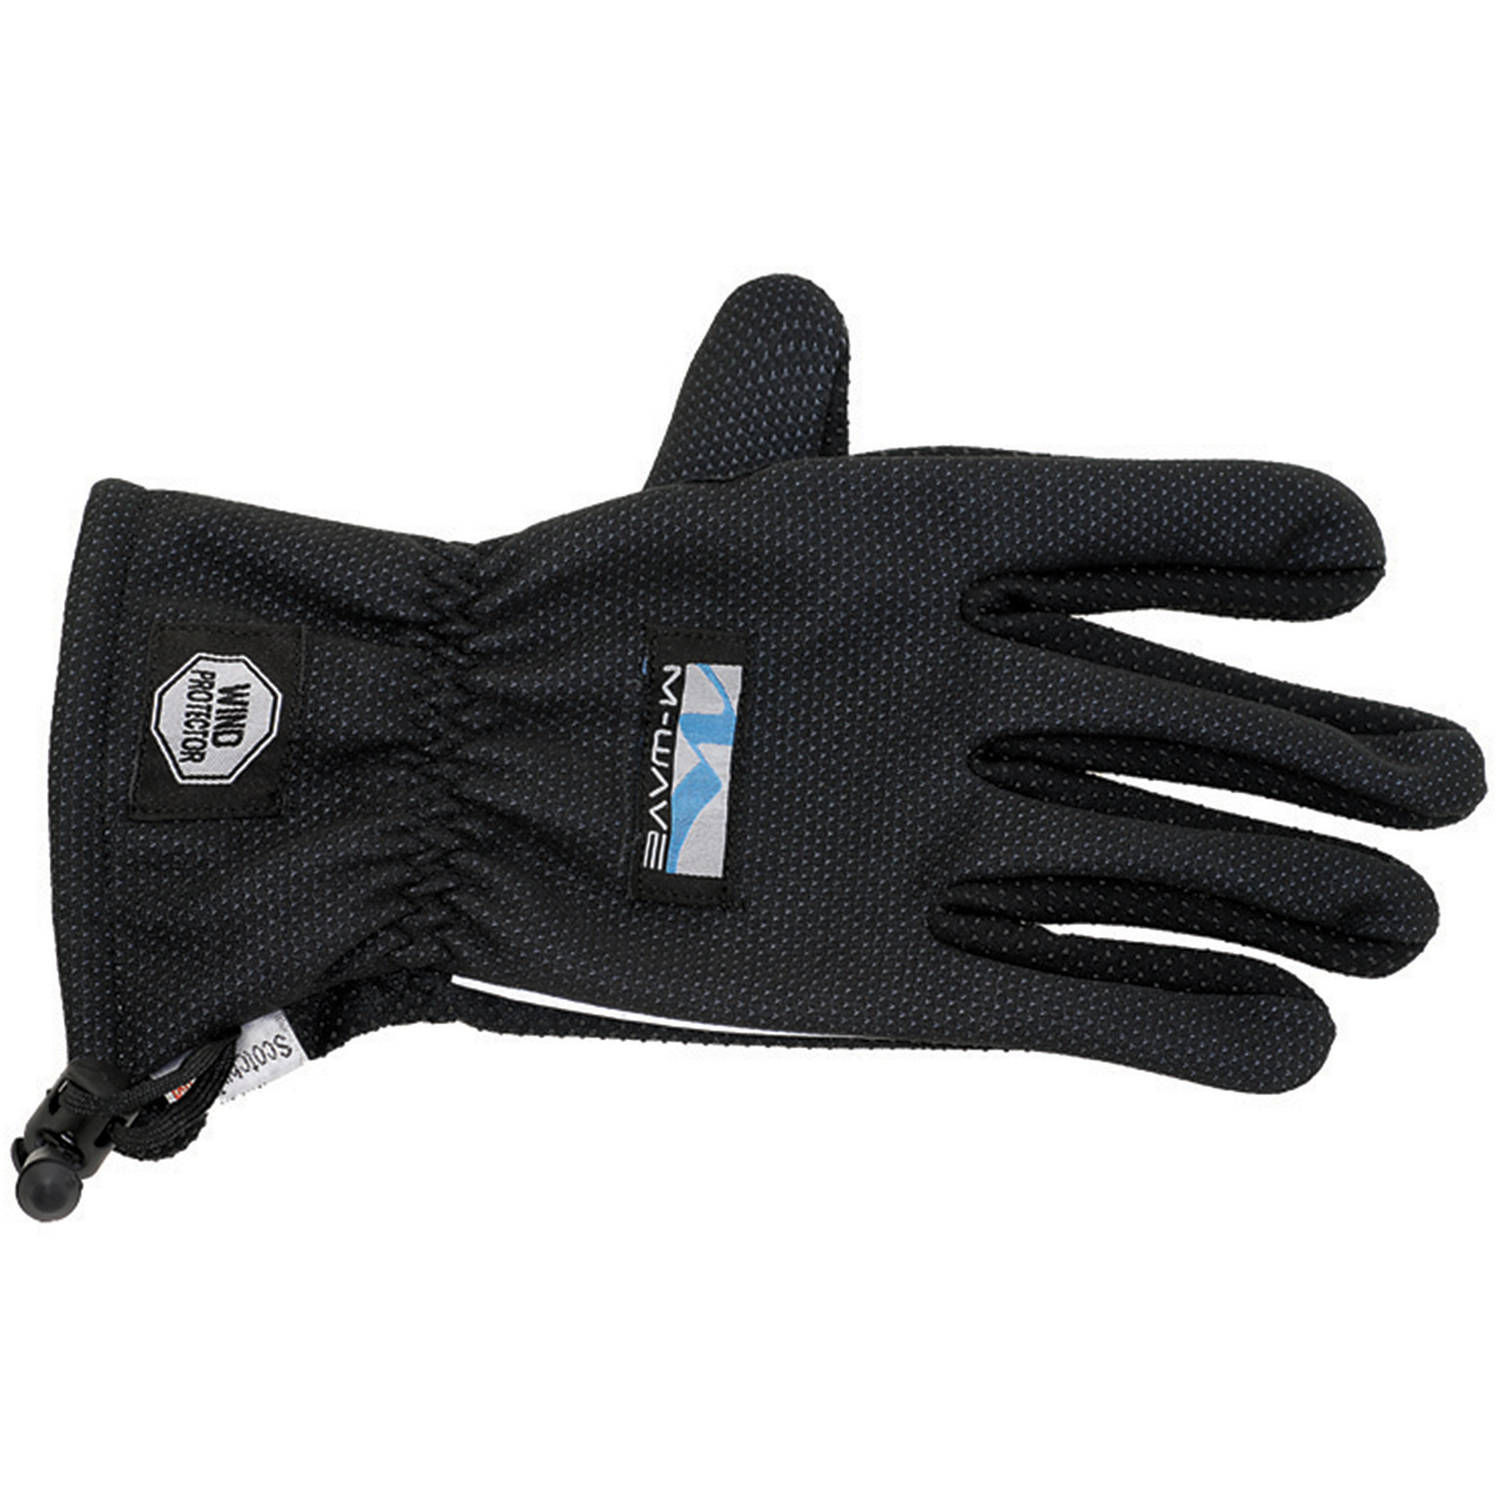 Ventura Winter Riding Gloves, Large XL by Generic